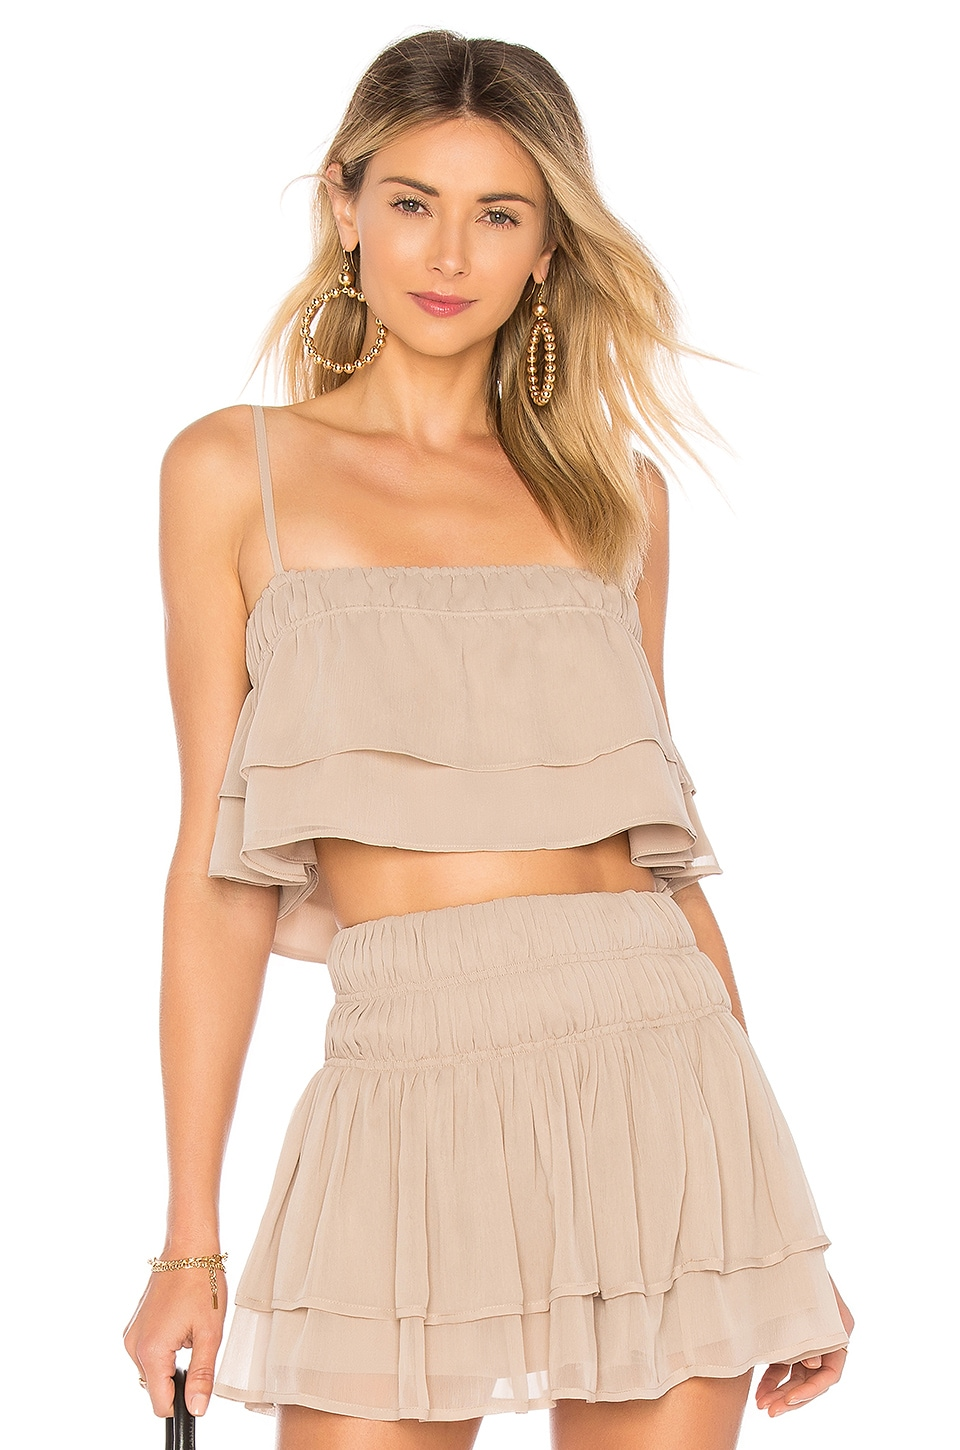 Tularosa TOP CROPPED STELLA